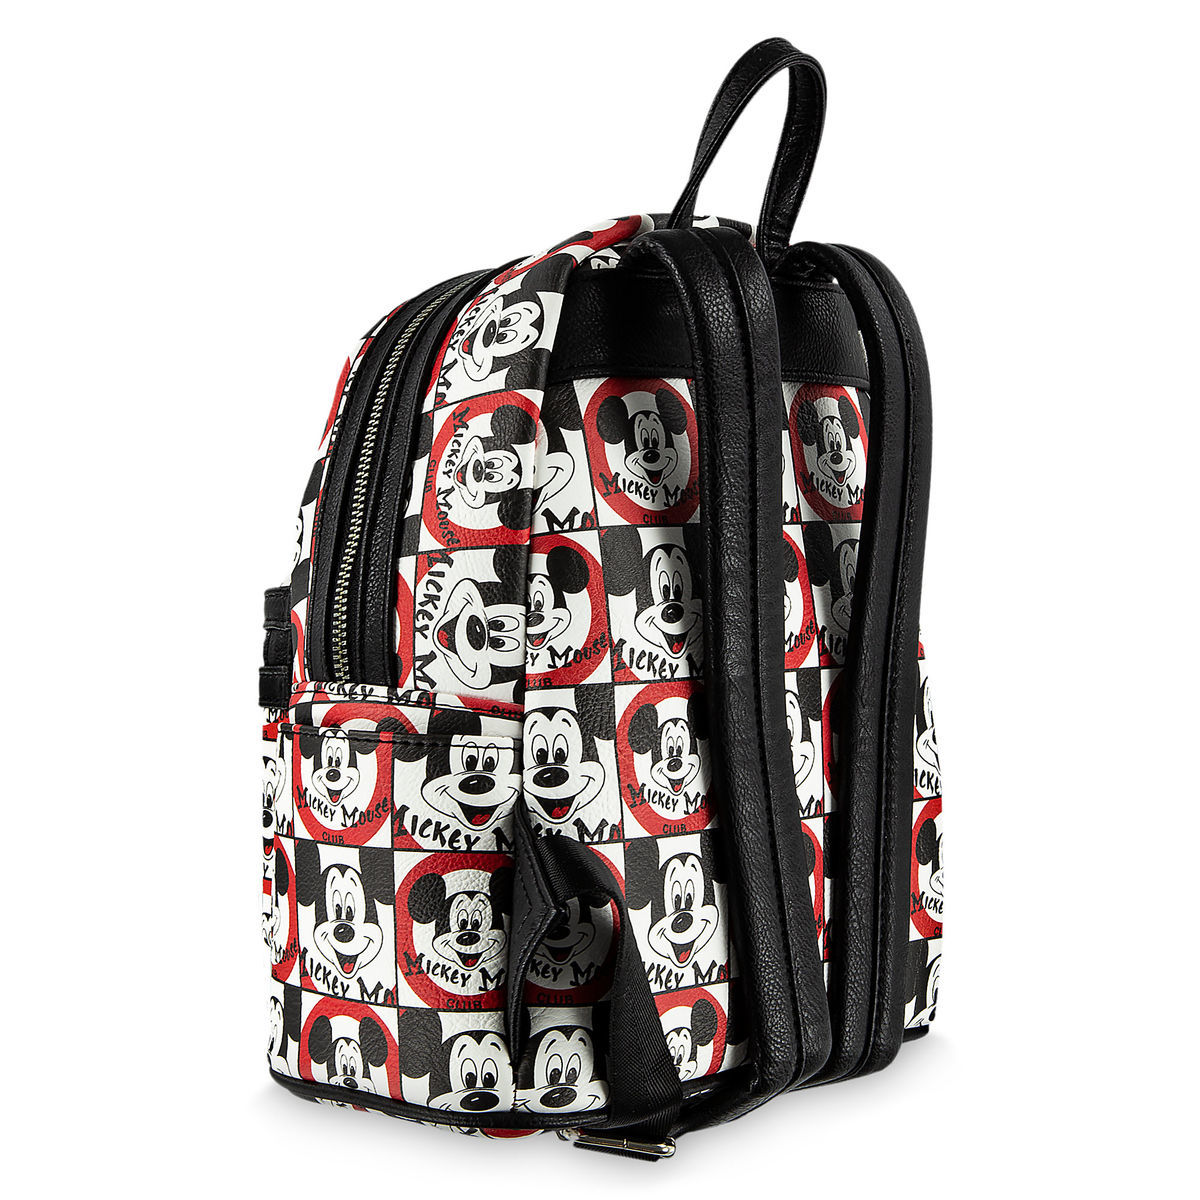 0a6452e95d3 Disney Parks Loungefly Mini Backpack - The Mickey Mouse Club